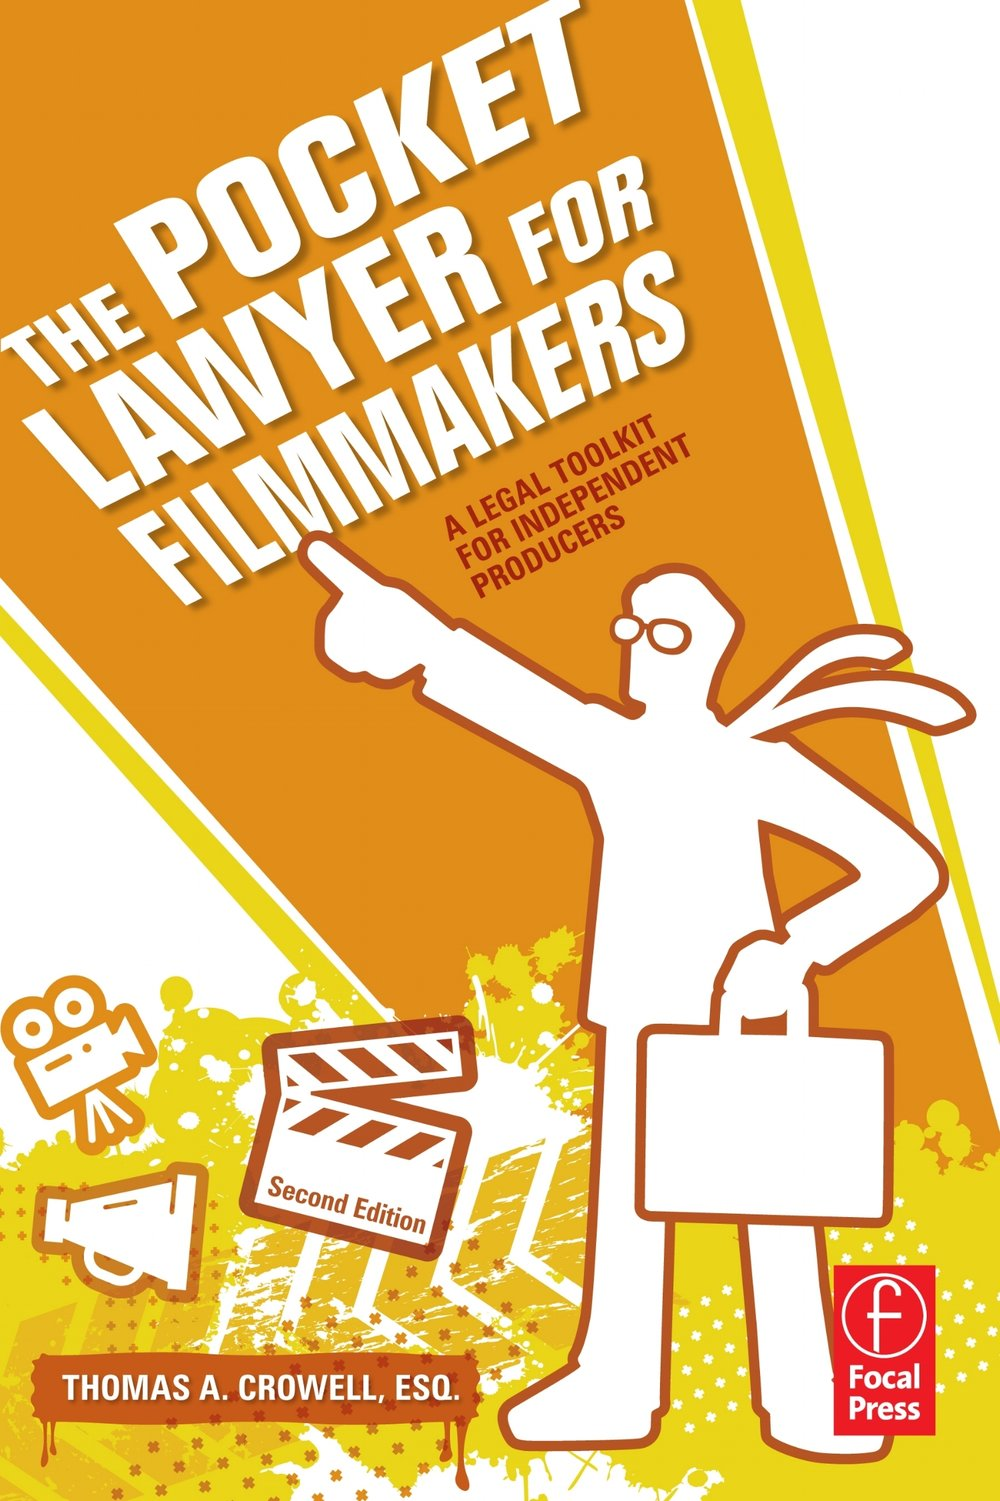 The Pocket Lawyer for Filmmakers - This no-nonsense reference provides fast answers in plain English with no law degree required! It is designed to help you reduce legal costs by providing the vital information you need to make informed decisions on the legal aspects of your film, video, and TV productions. Actors get hurt, copyrights are infringed, and contracts are broken. Big-budget producers have lawyers on retainer, but as an independent filmmaker, you are left legally exposed. Arm yourself with the practical advice of a TV-producer-turned-entertainment-lawyer.